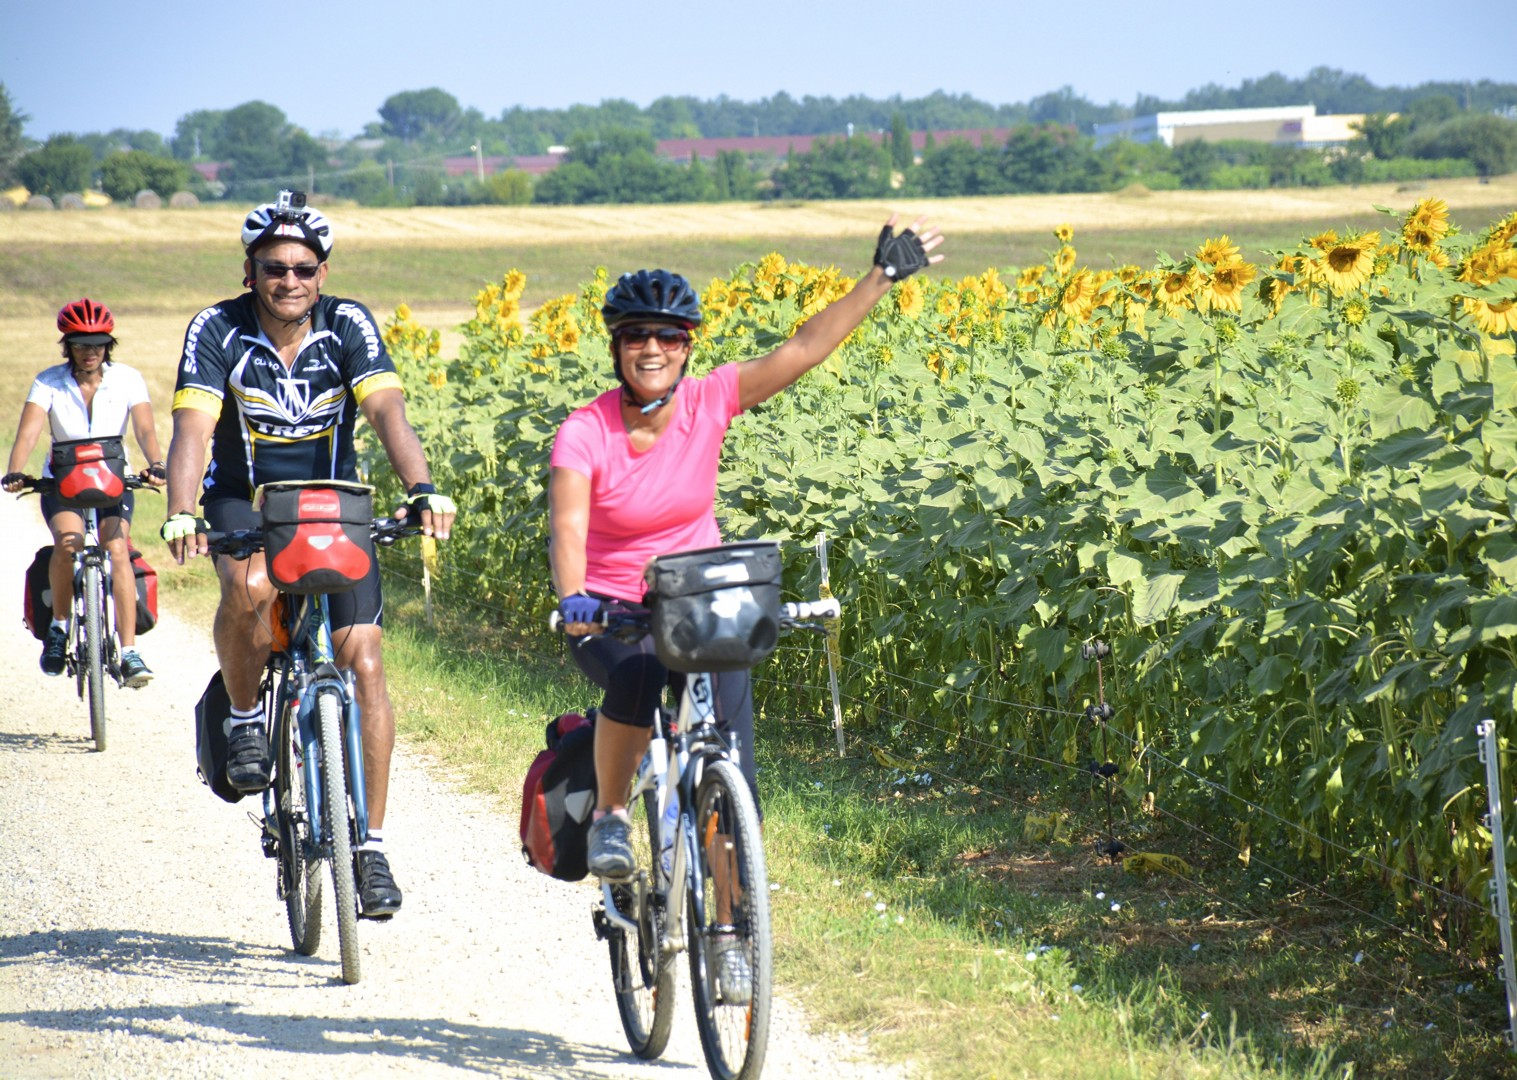 tuscnay-cycling-holiday-landscape.jpg - Italy - Classic Tuscany - Self-Guided Leisure Cycling Holiday - Leisure Cycling